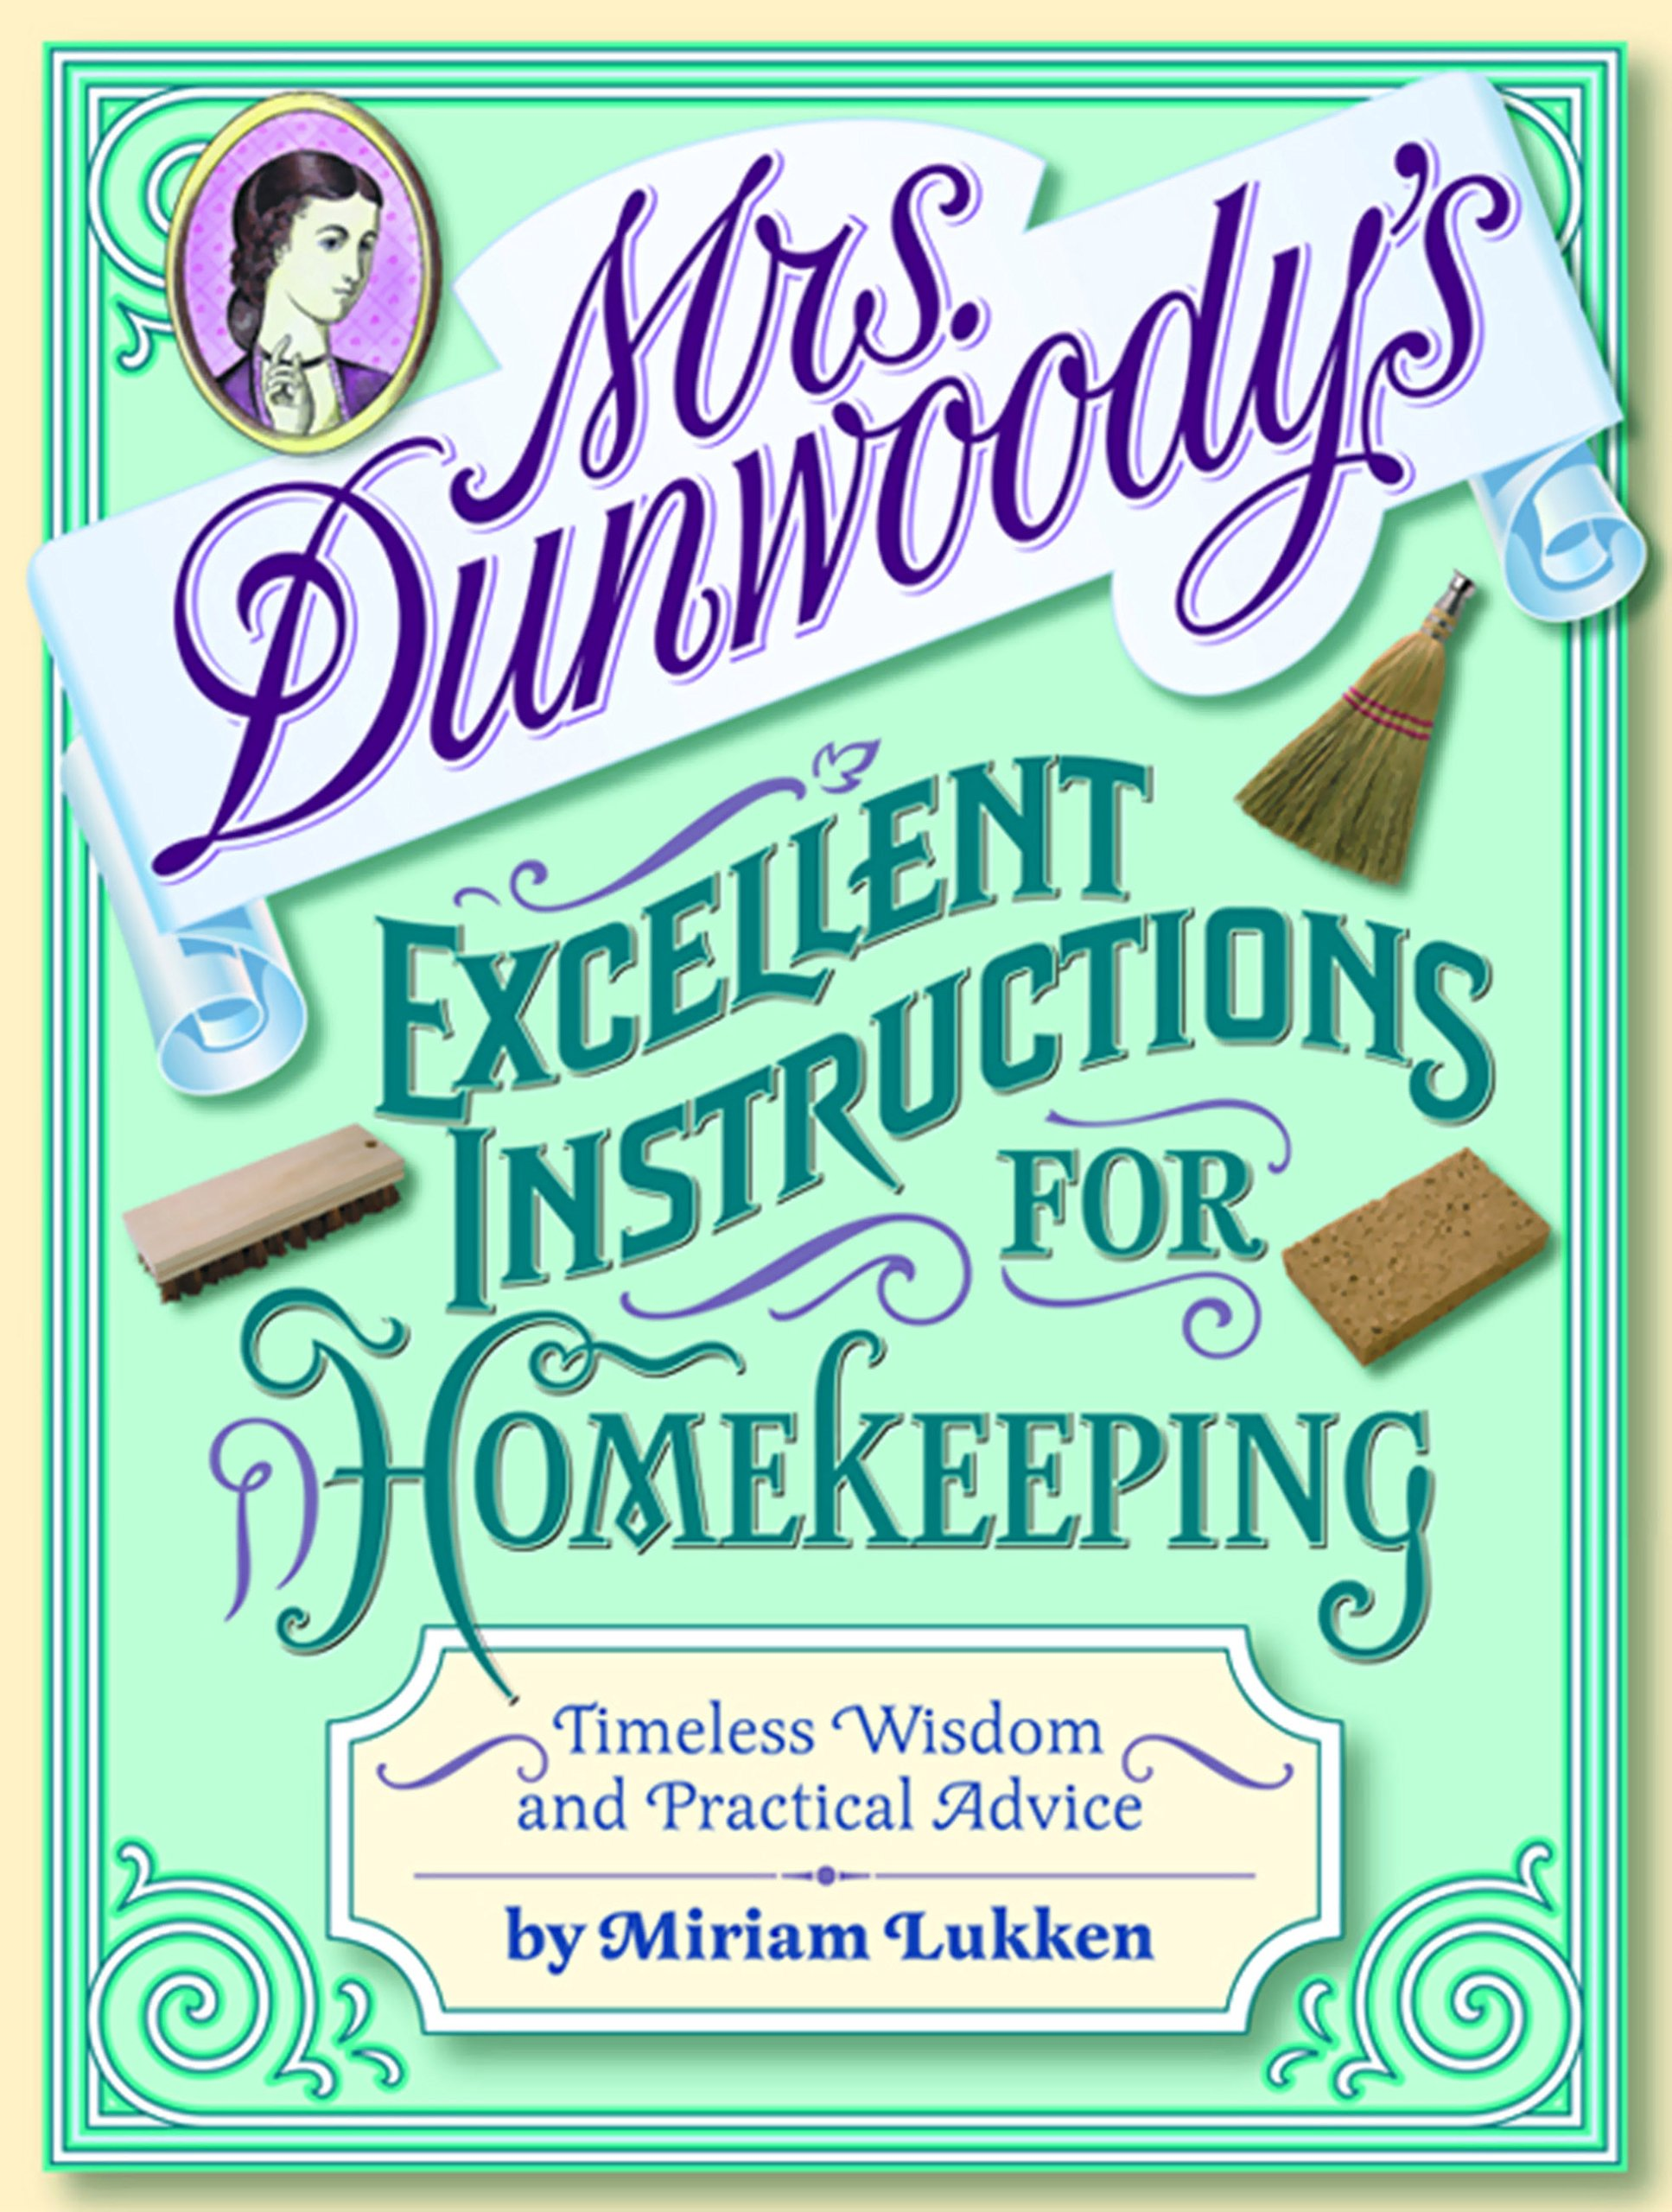 Mrs. Dunwoody's Excellent Instructions For Homekeeping  Timeless Wisdom And Practical Advice  English Edition